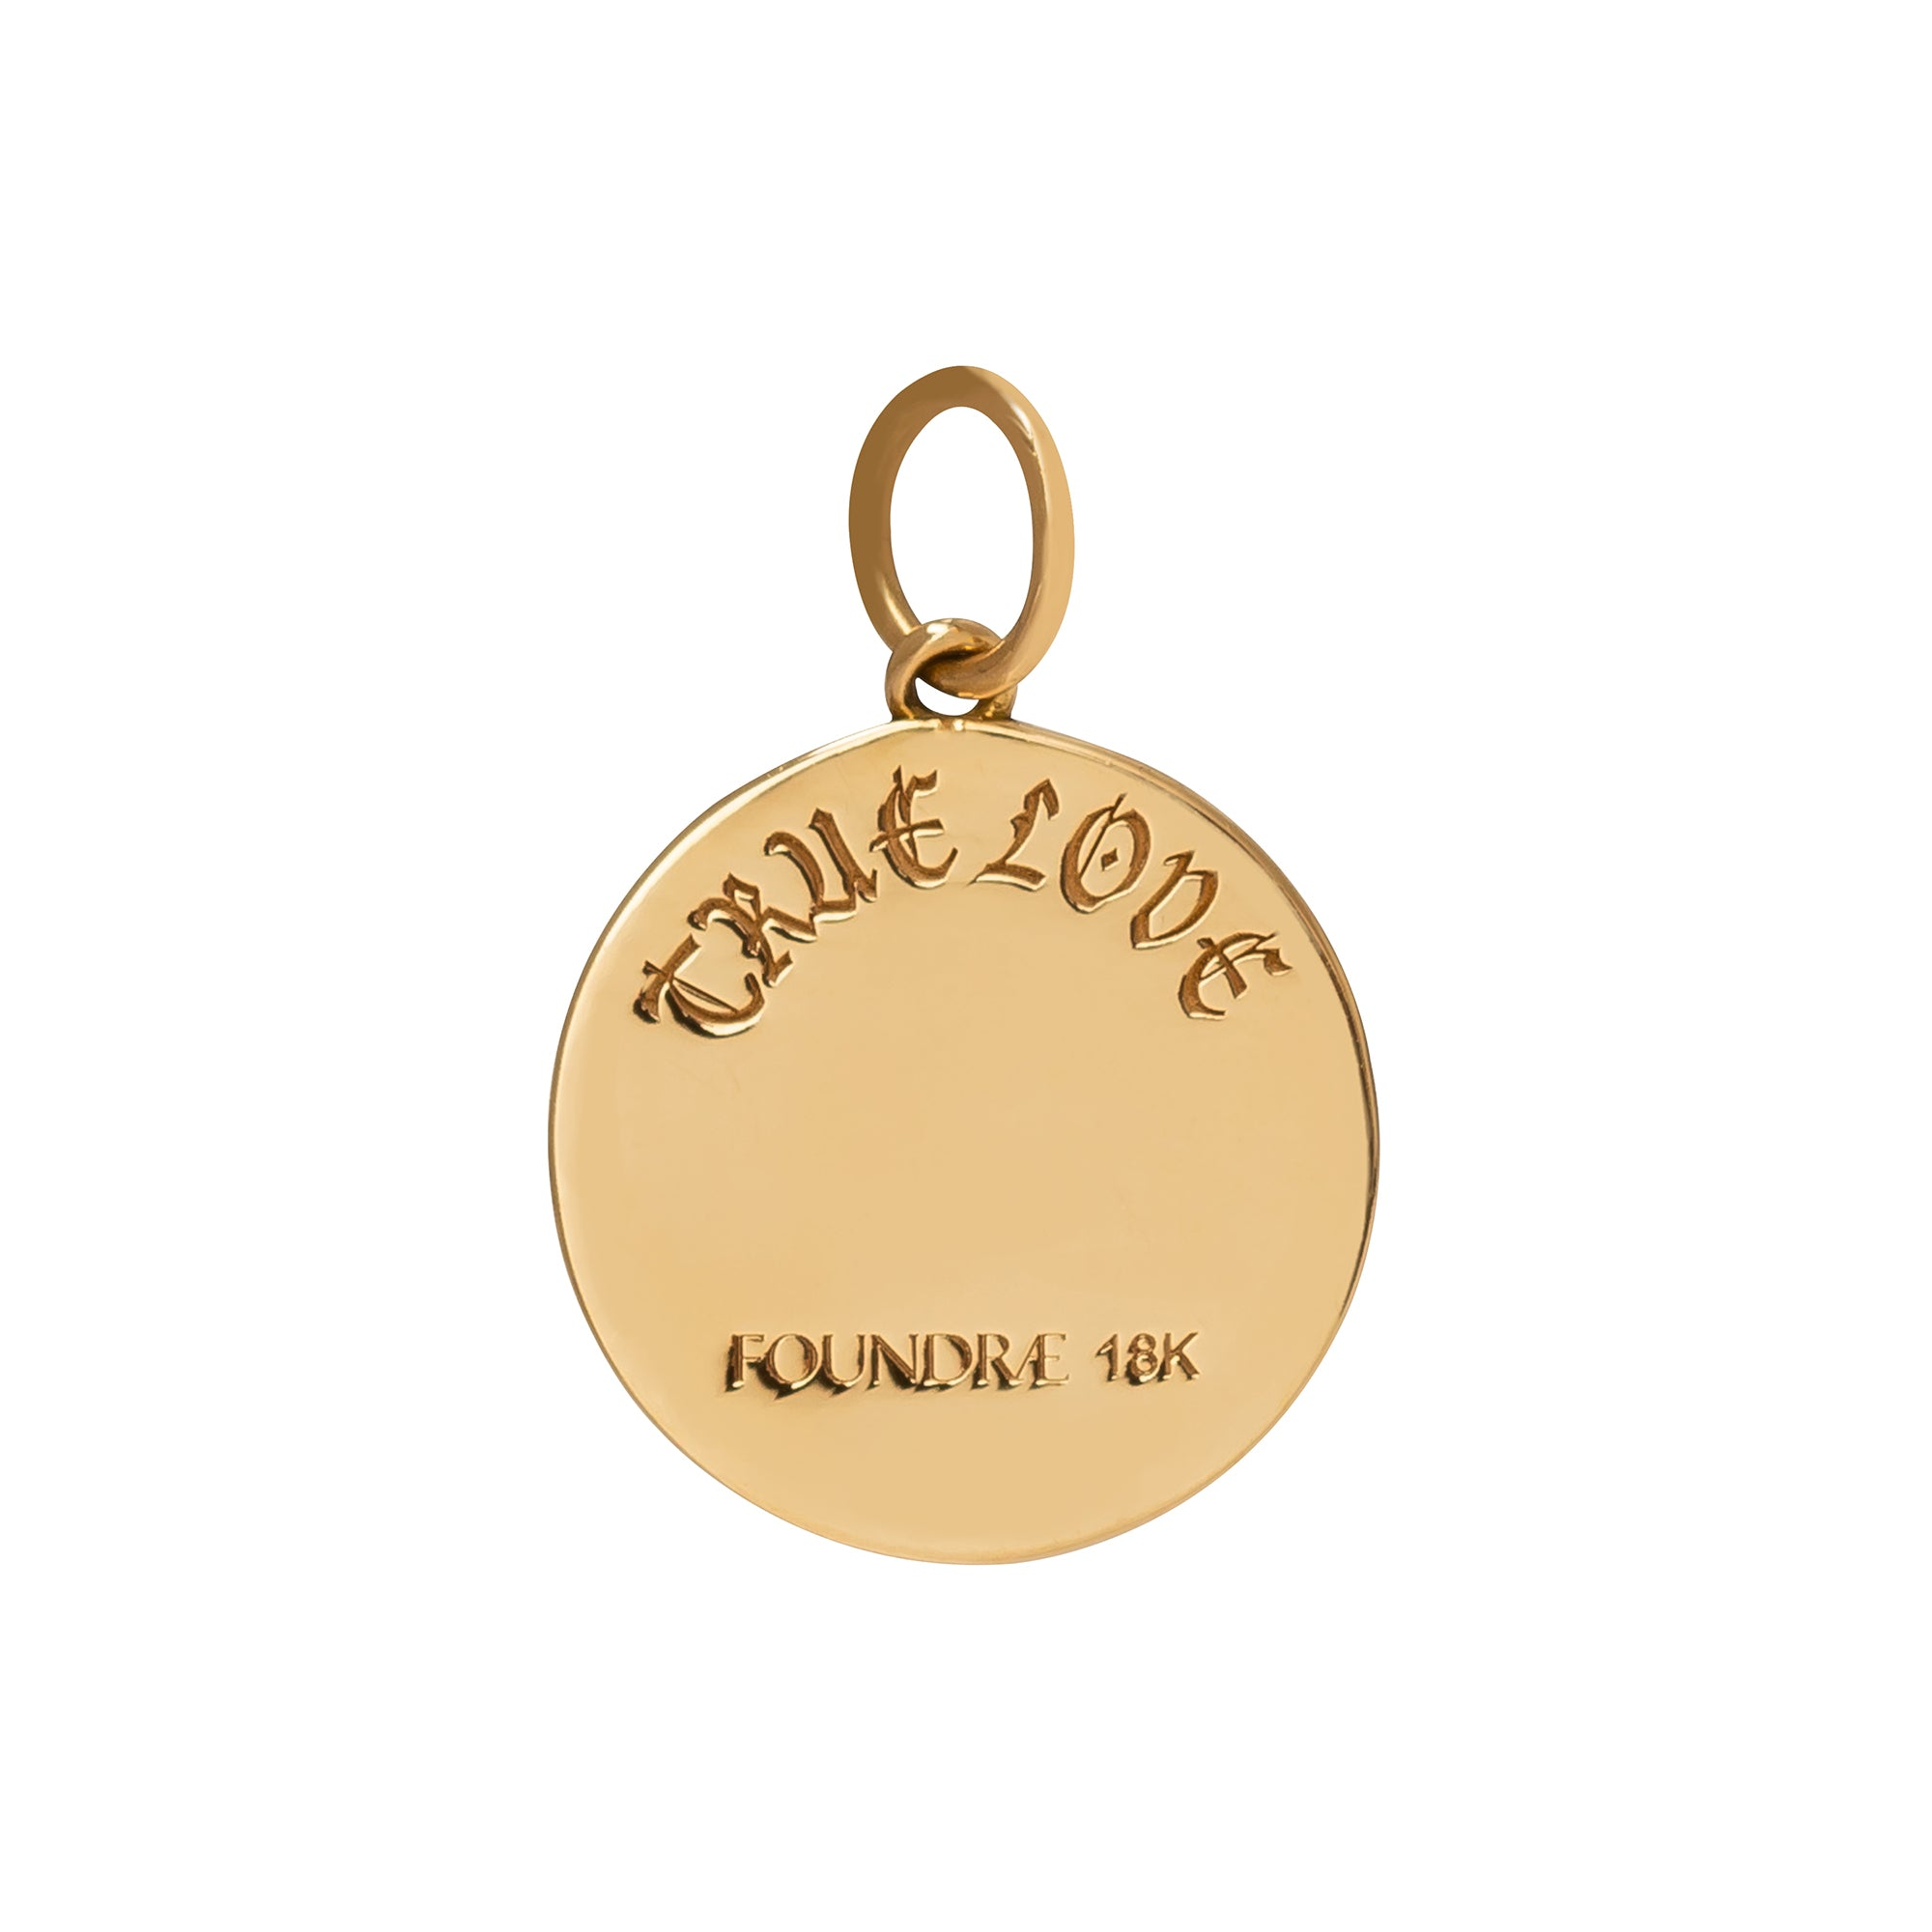 Petite True Love Medallion  - Foundrae - Charms & Pendants | Broken English Jewelry